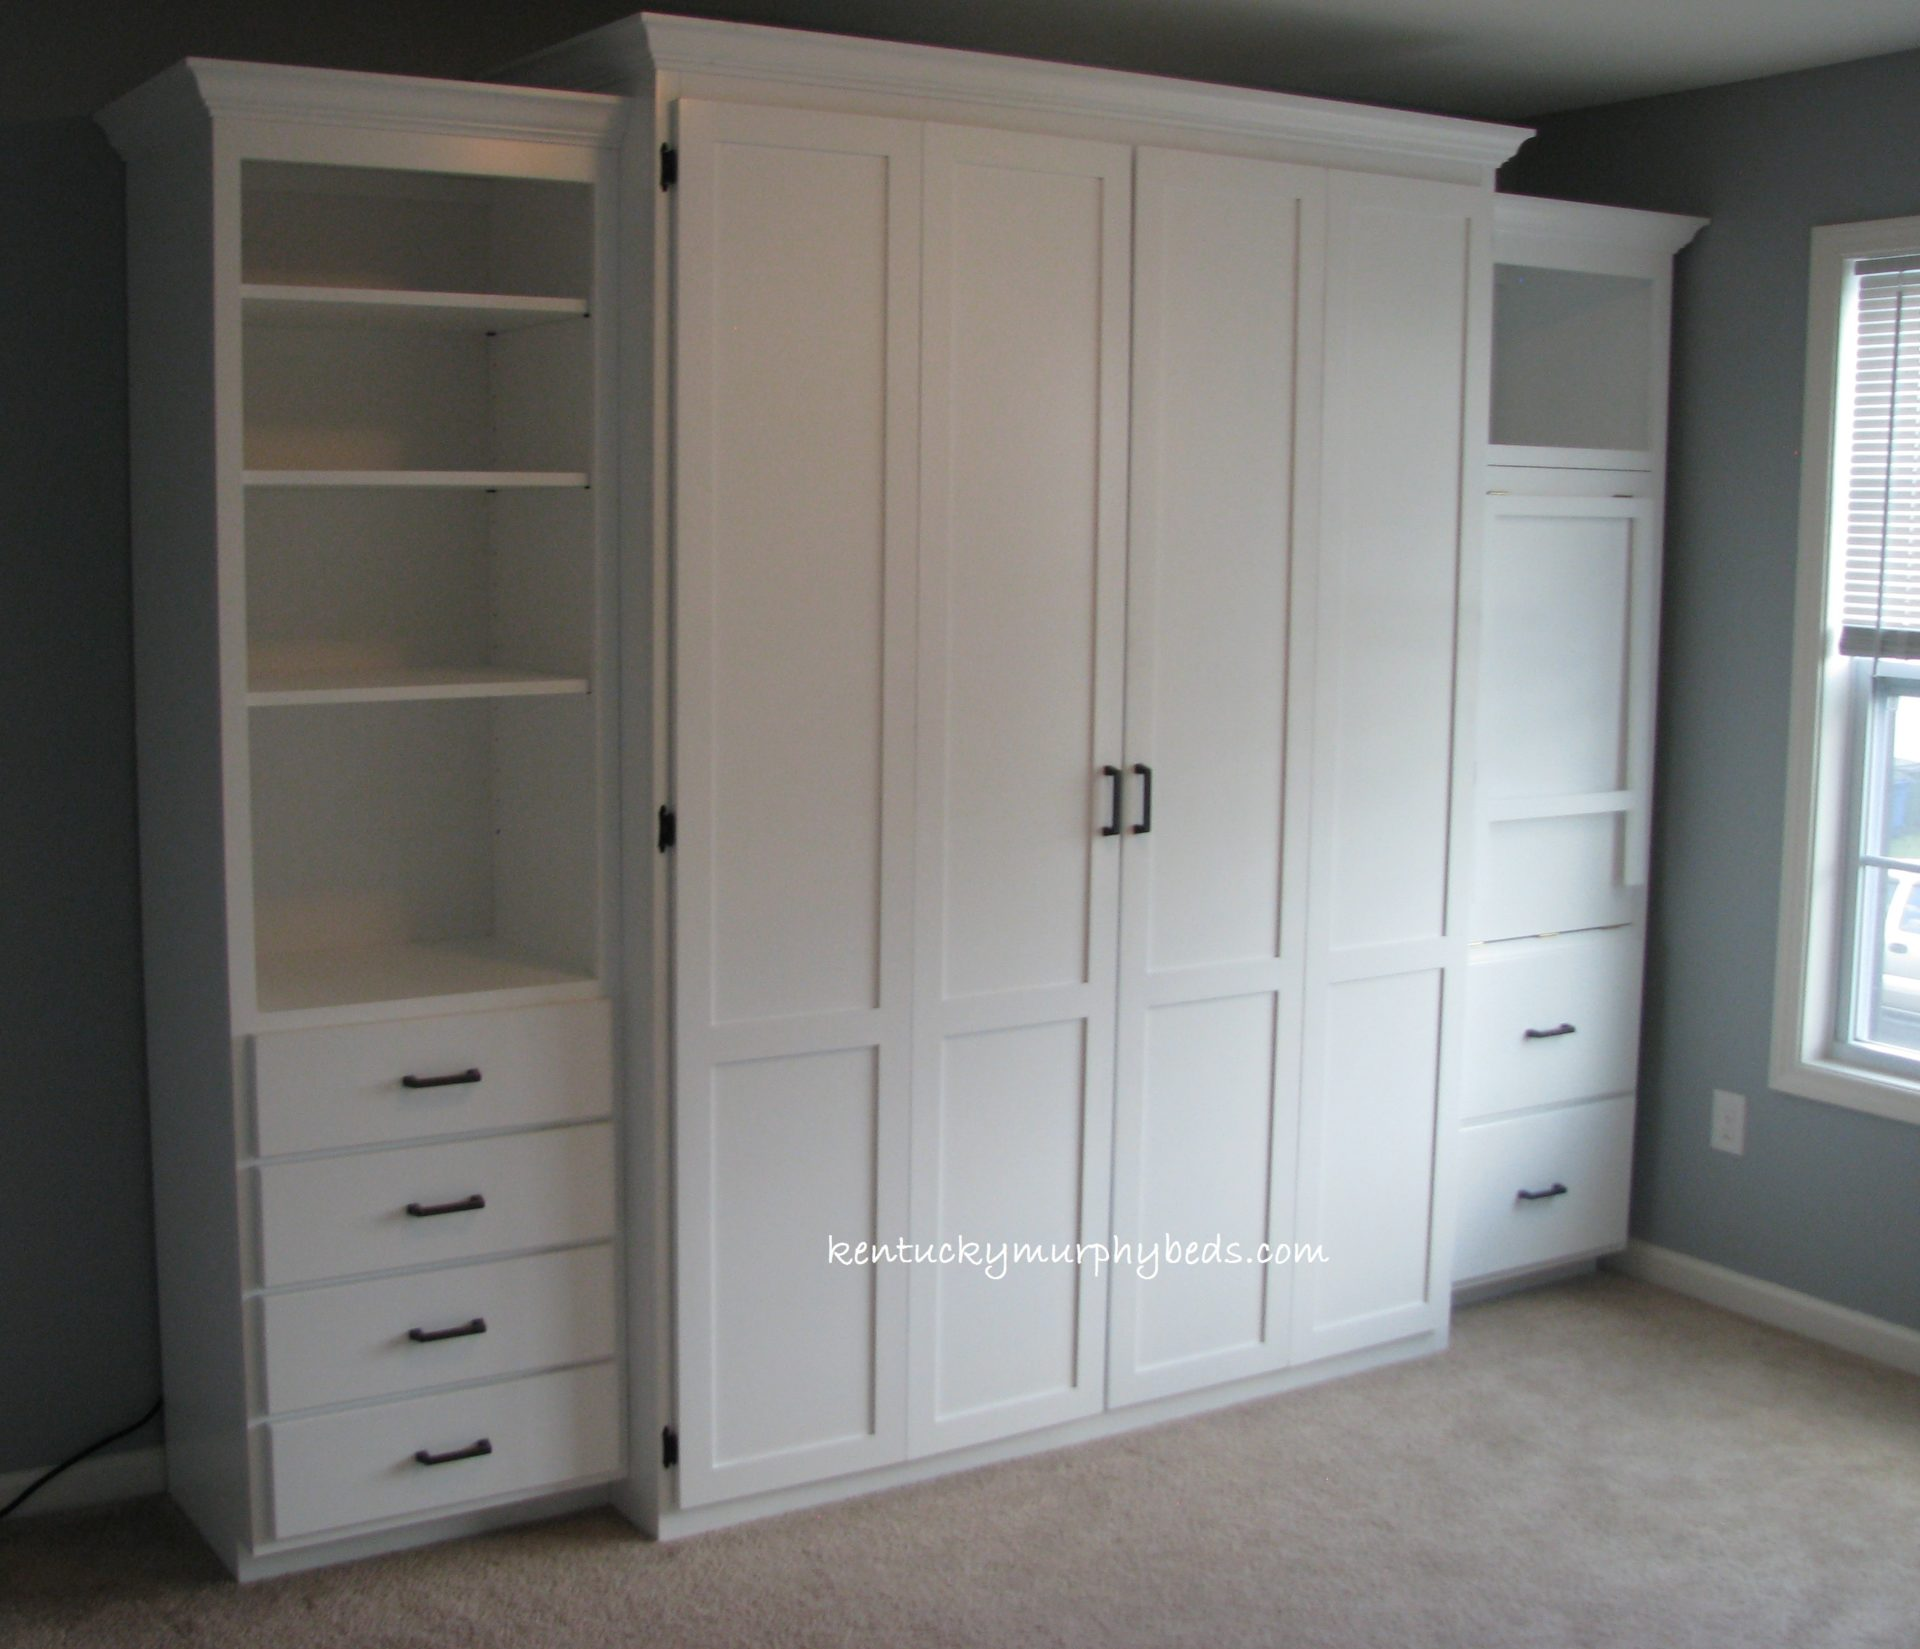 Queen size bifold door Murphy bed with side cabinet Murphy desk shown closed and additional book case, MDF, painted white